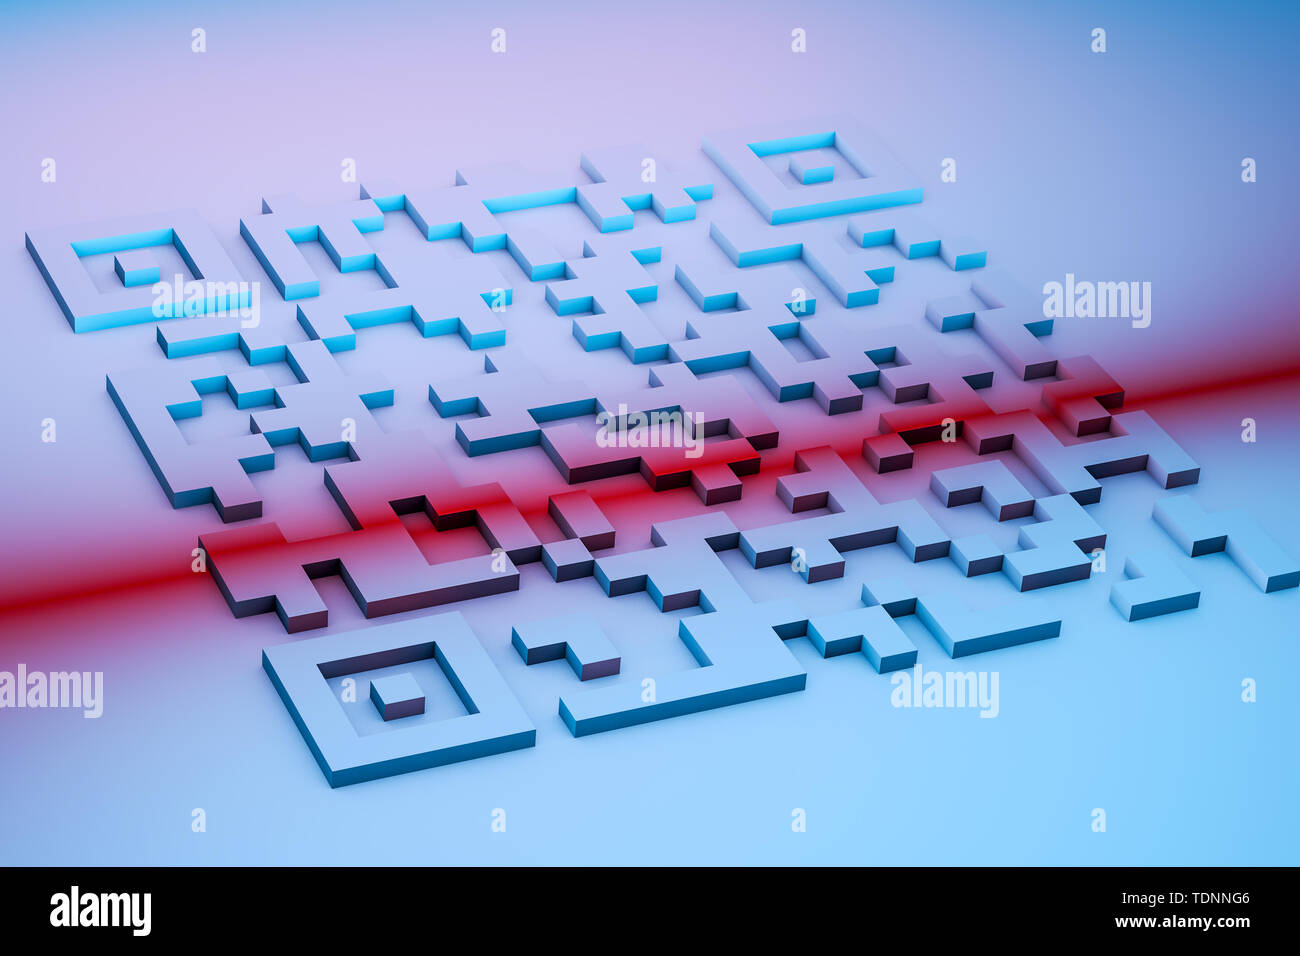 Qr Code Abstract Design Stock Photos & Qr Code Abstract Design Stock